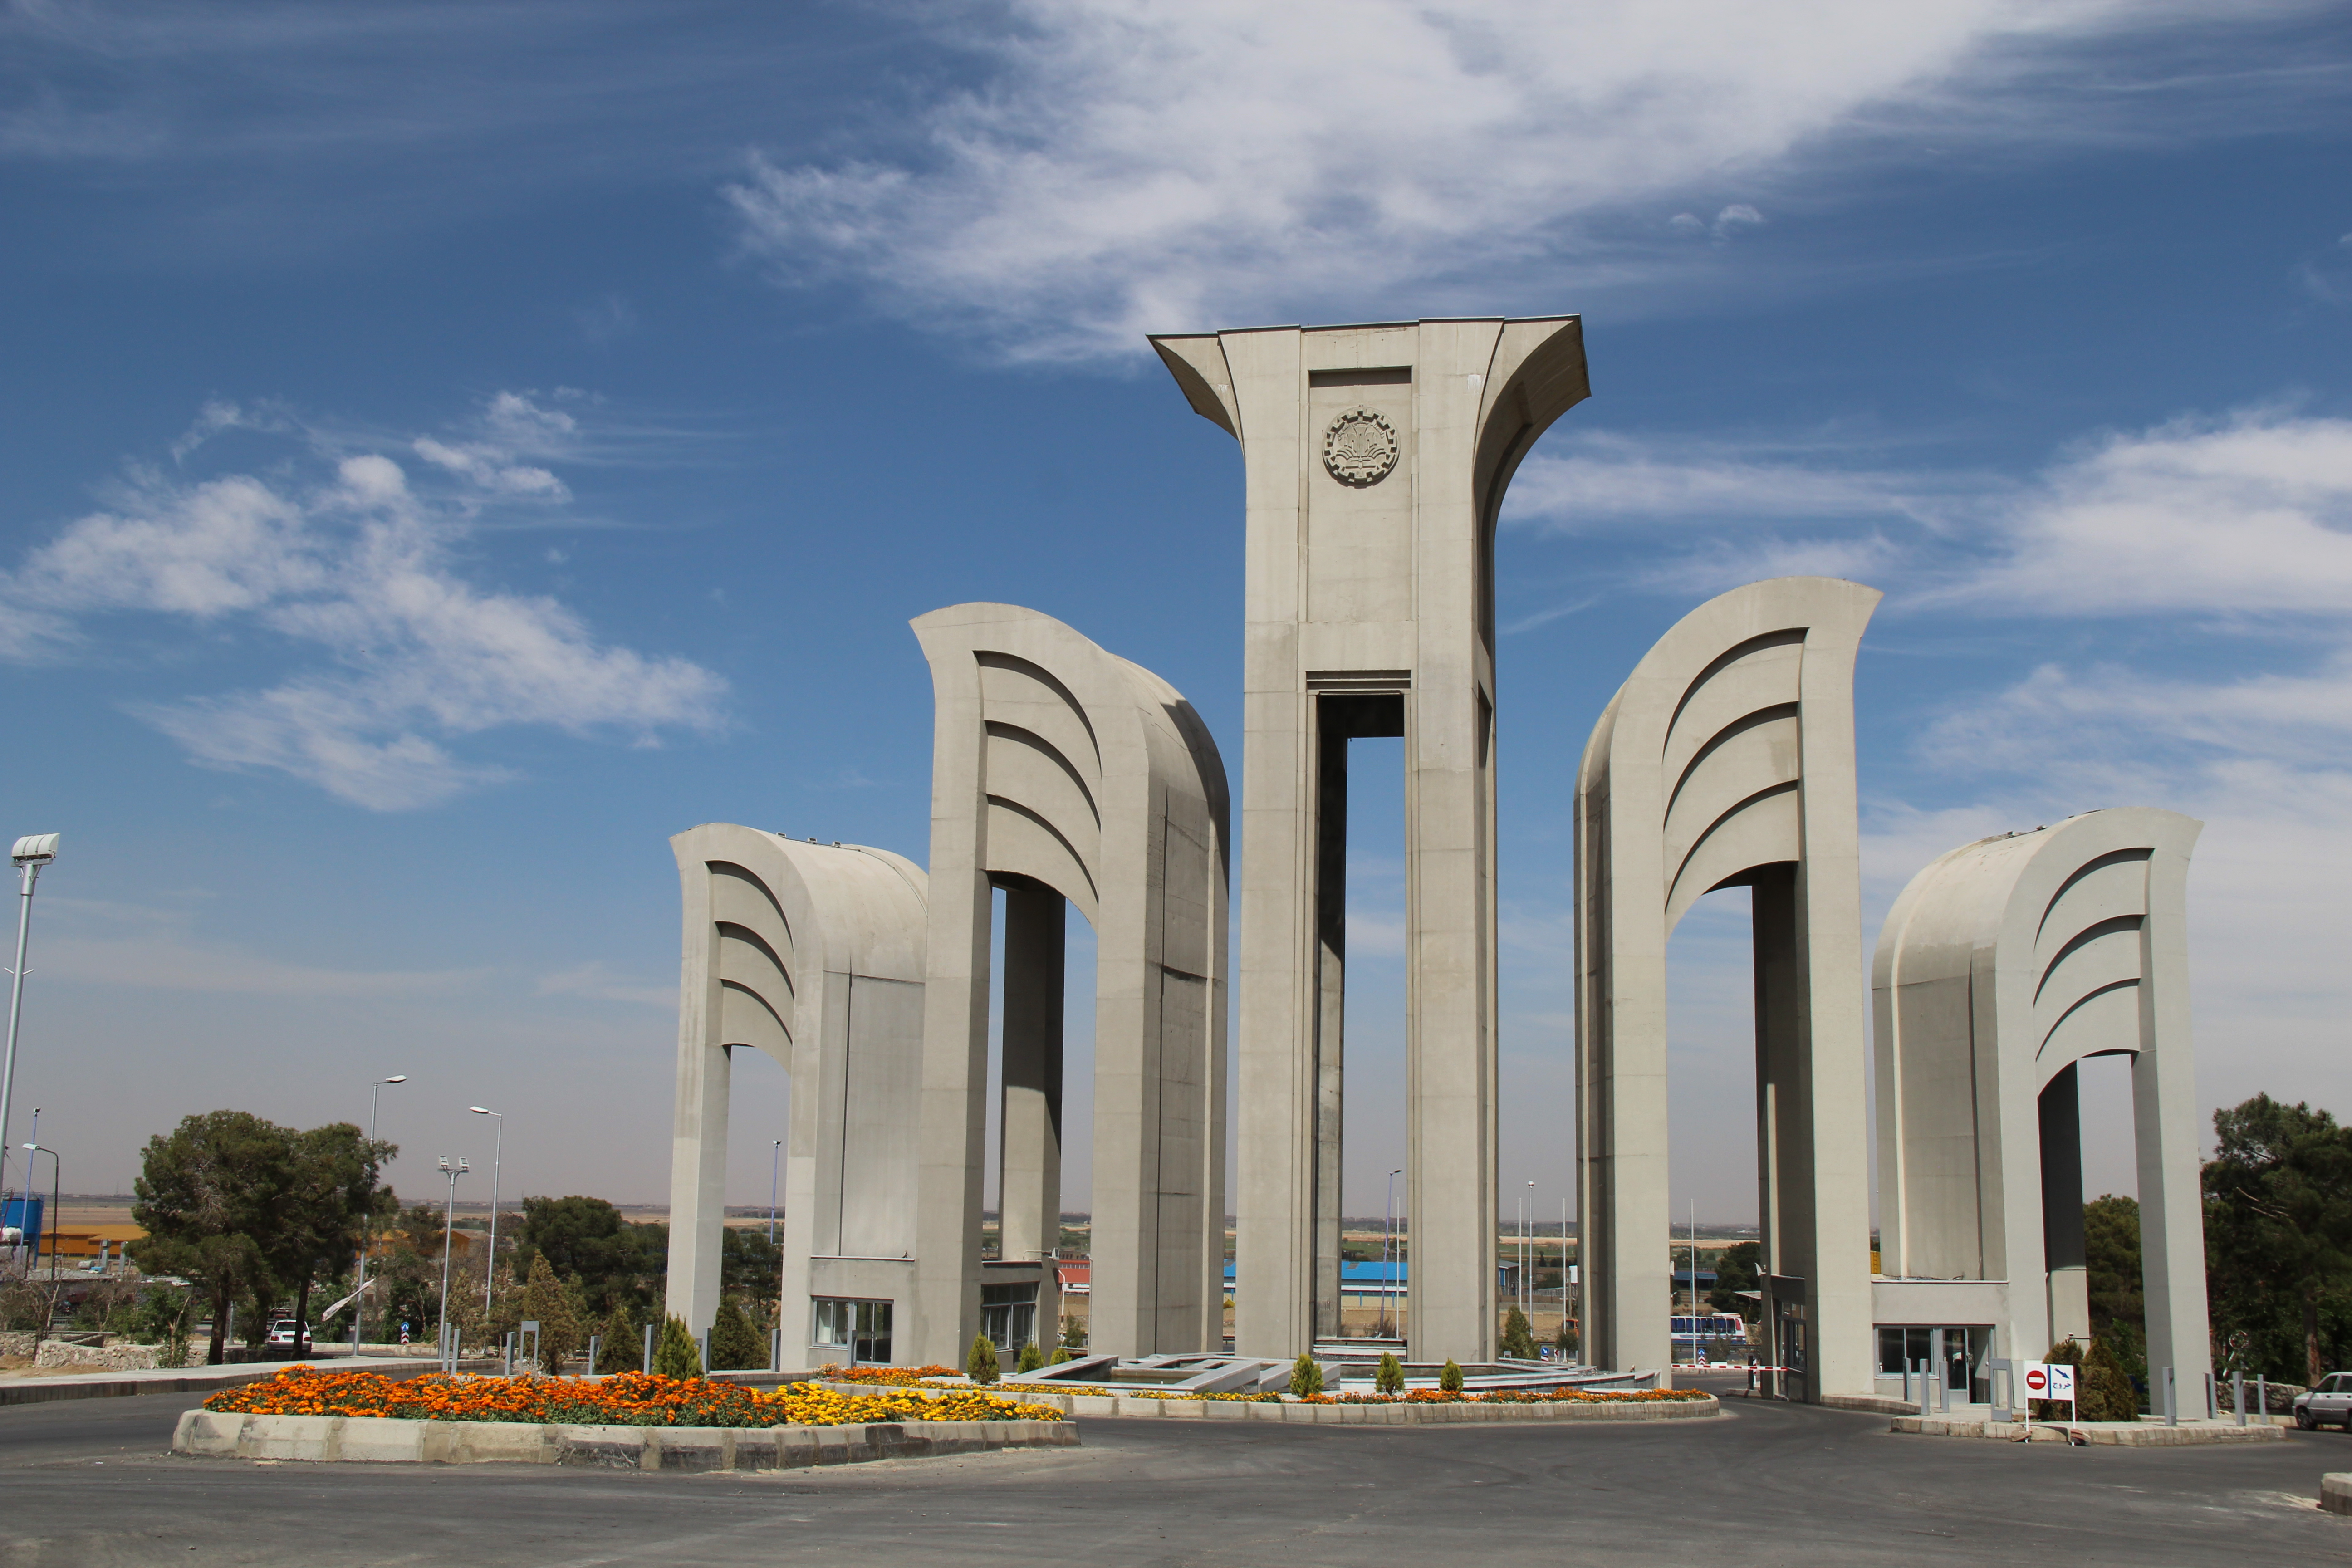 Iut Ieee Isfahan University Of Technology Student Branch